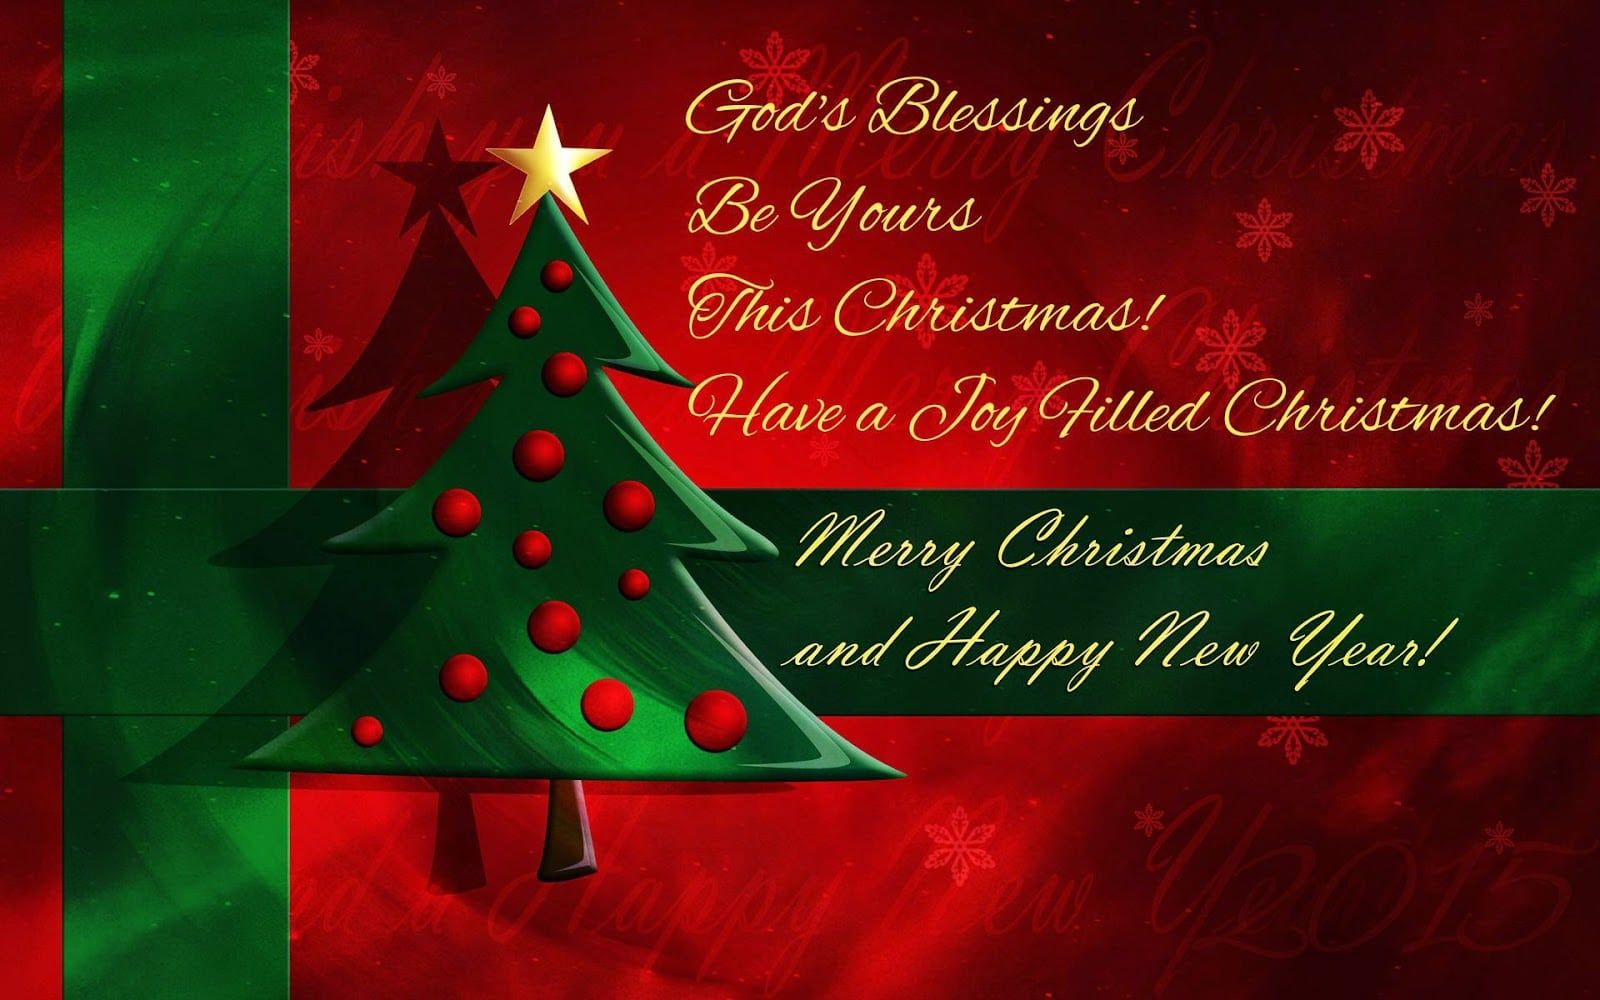 Christmas greetings for andrew andrew pinterest merry christmas greetings for andrew kristyandbryce Gallery